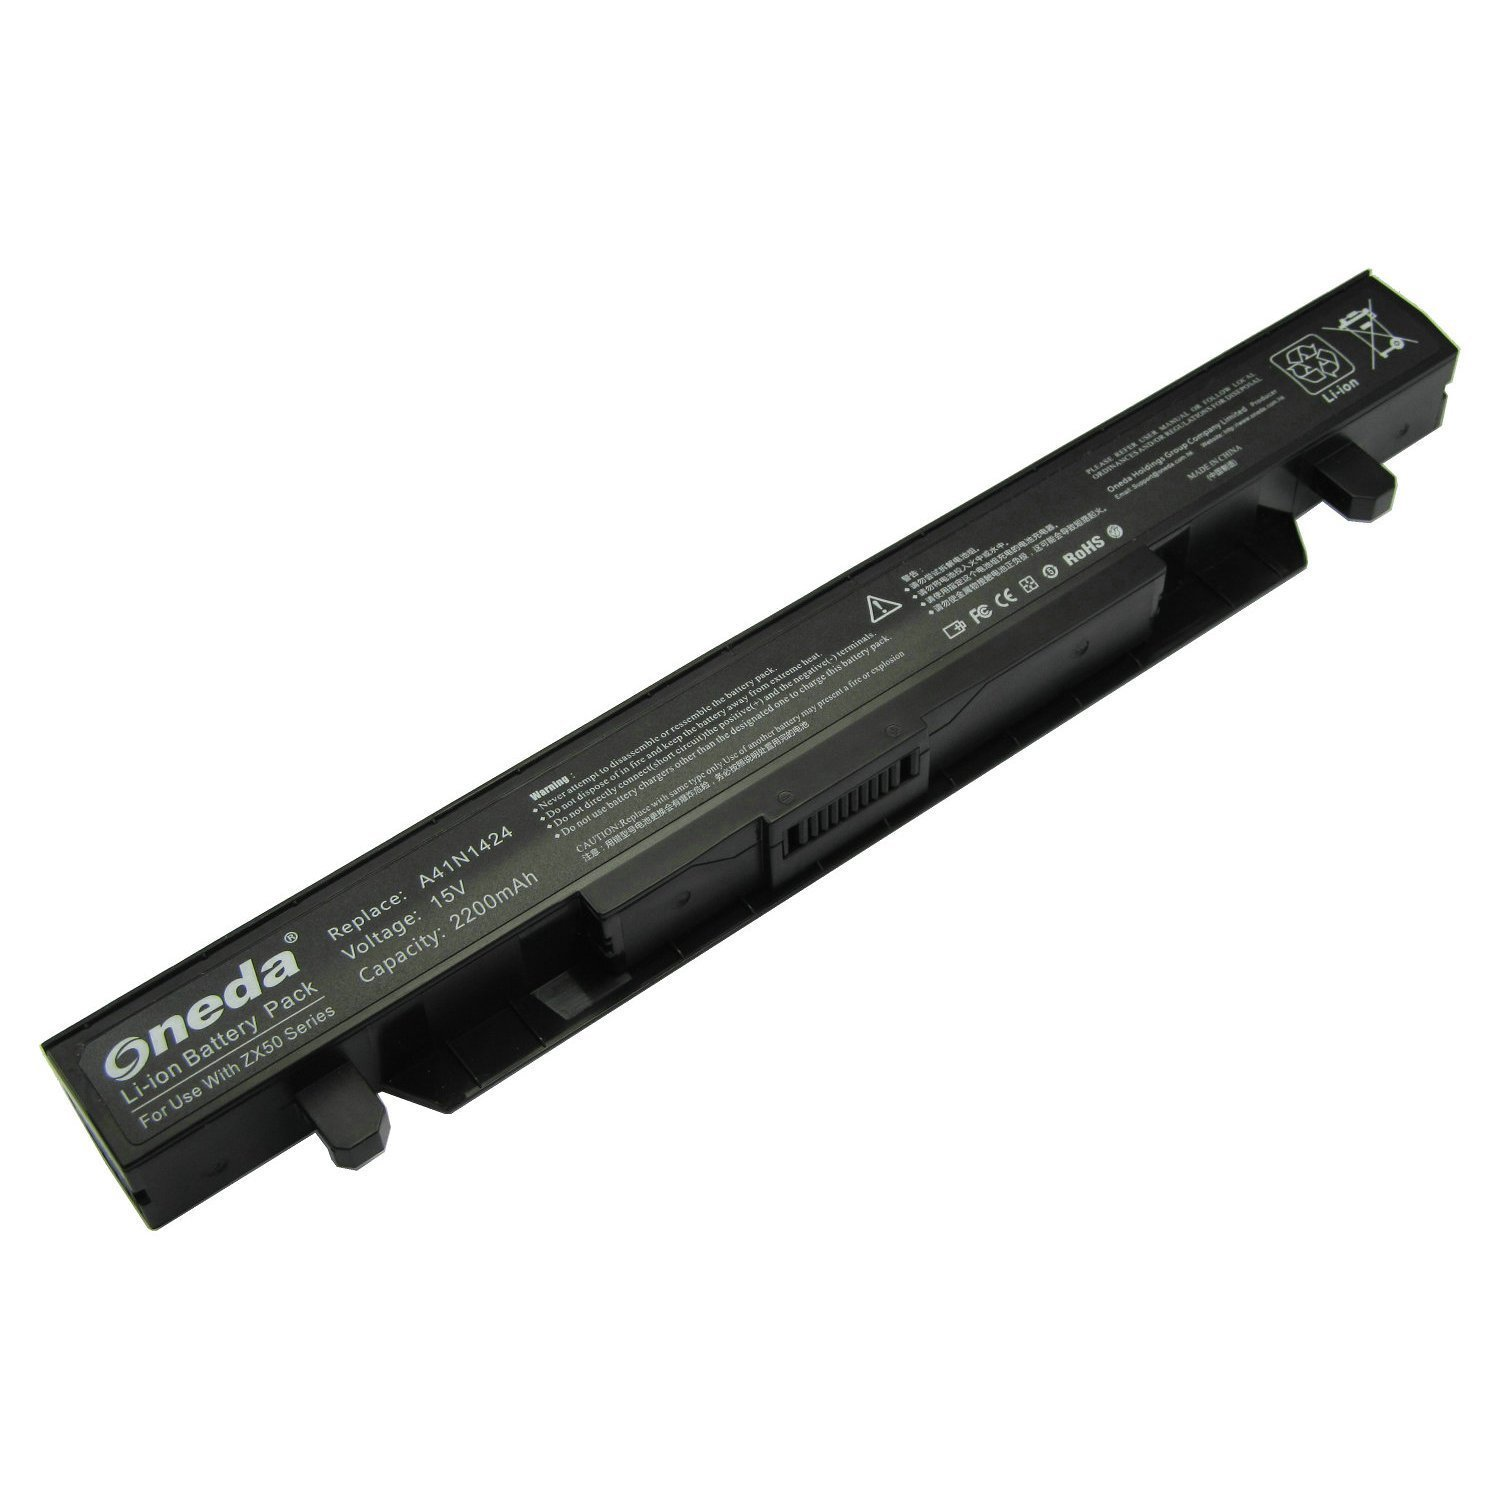 Oneda Laptop Notebook Battery for Asus FX-PLUS Series; Asus ROG FX-PLUS Series; Asus ZX50 ZX50J ZX50JX GL552 GL552J GL552JX GL552V GL552VW Series; P/N: A41N1424 Replacement batteries [4-cell /2200mAh]